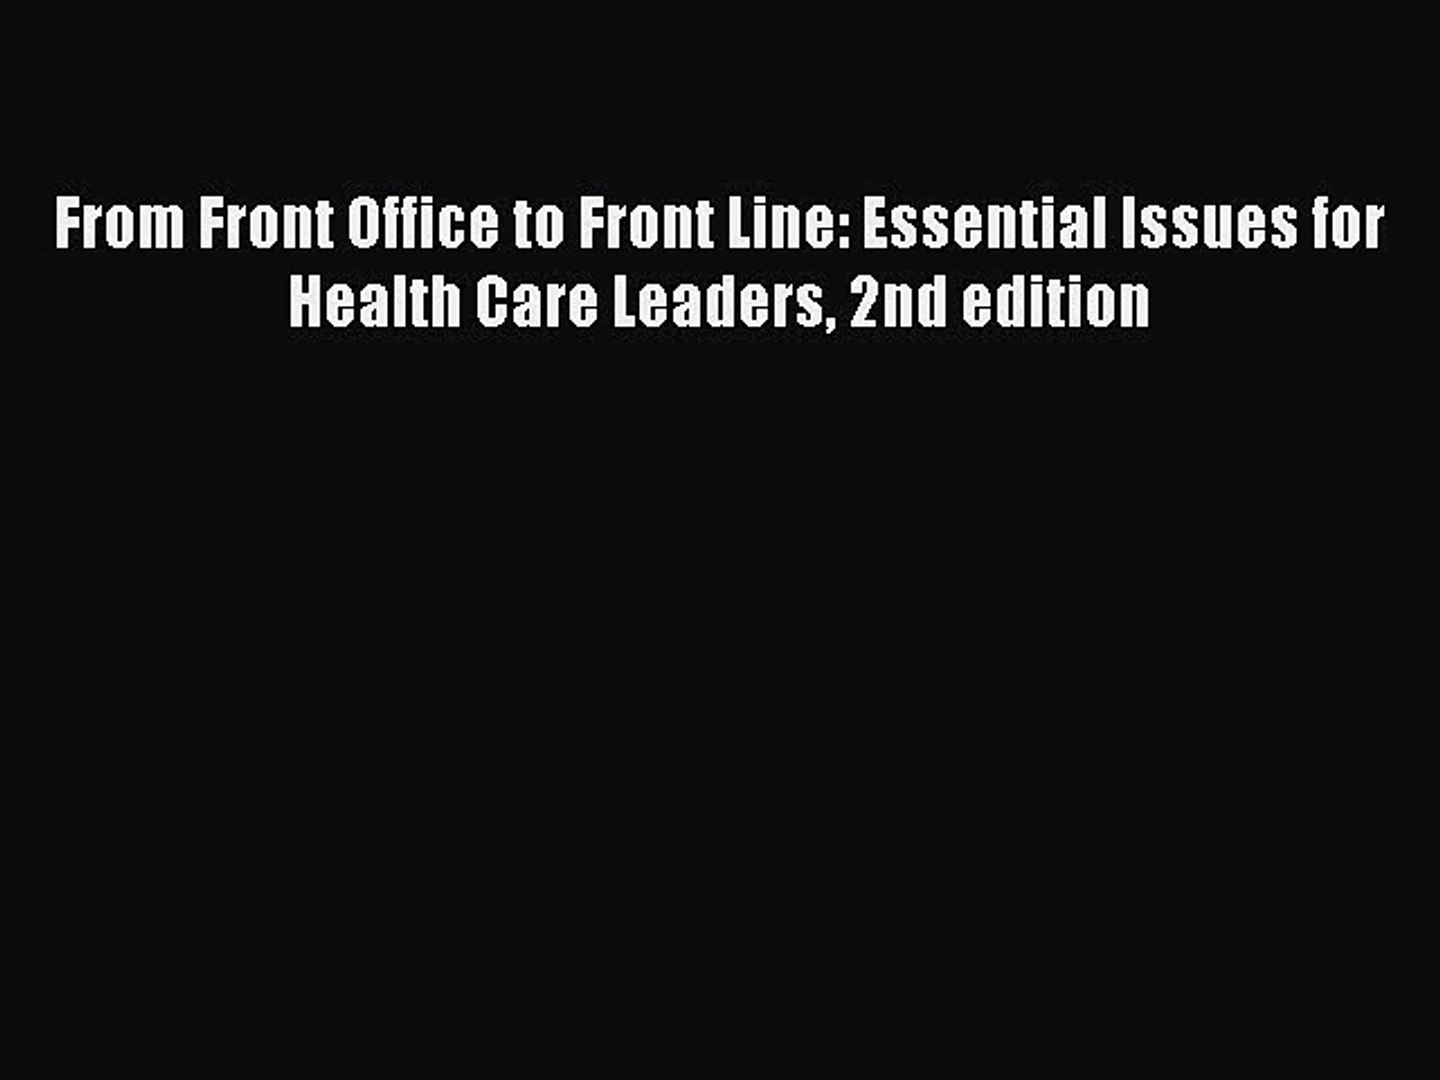 Read From Front Office to Front Line: Essential Issues for Health Care Leaders 2nd edition